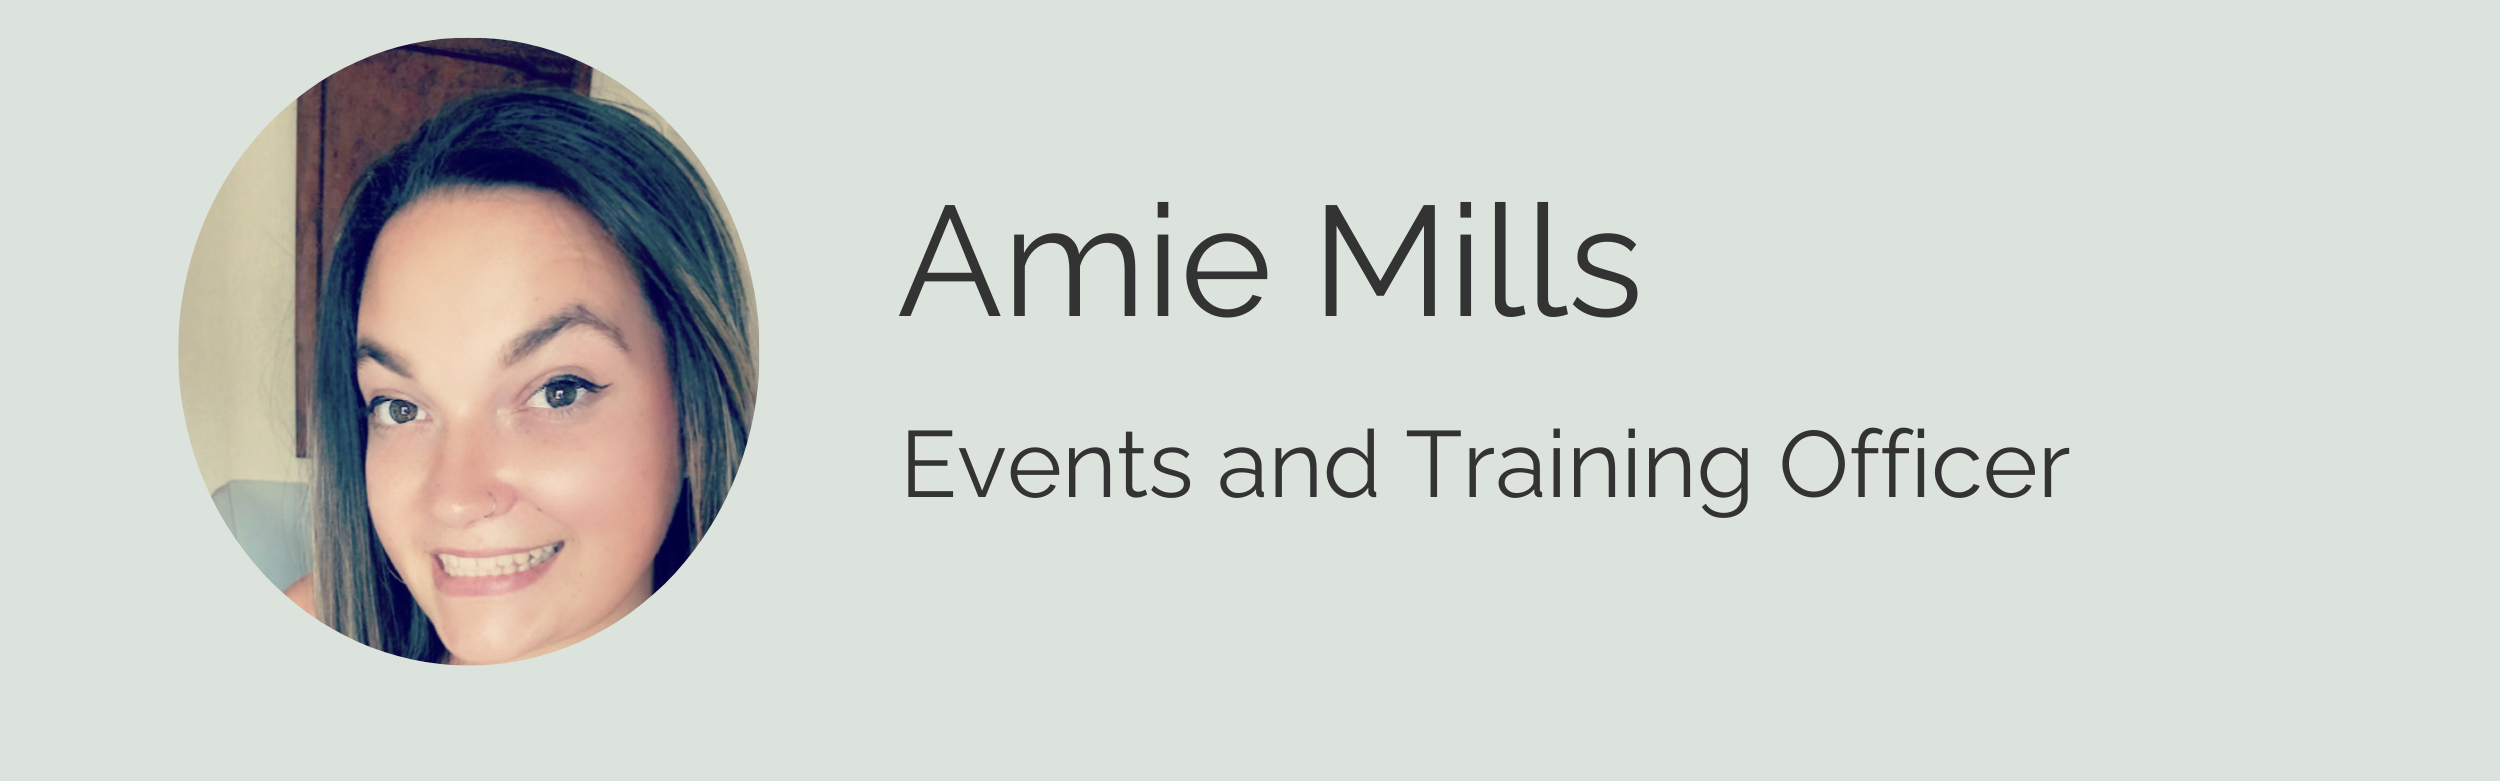 AM Events card ()